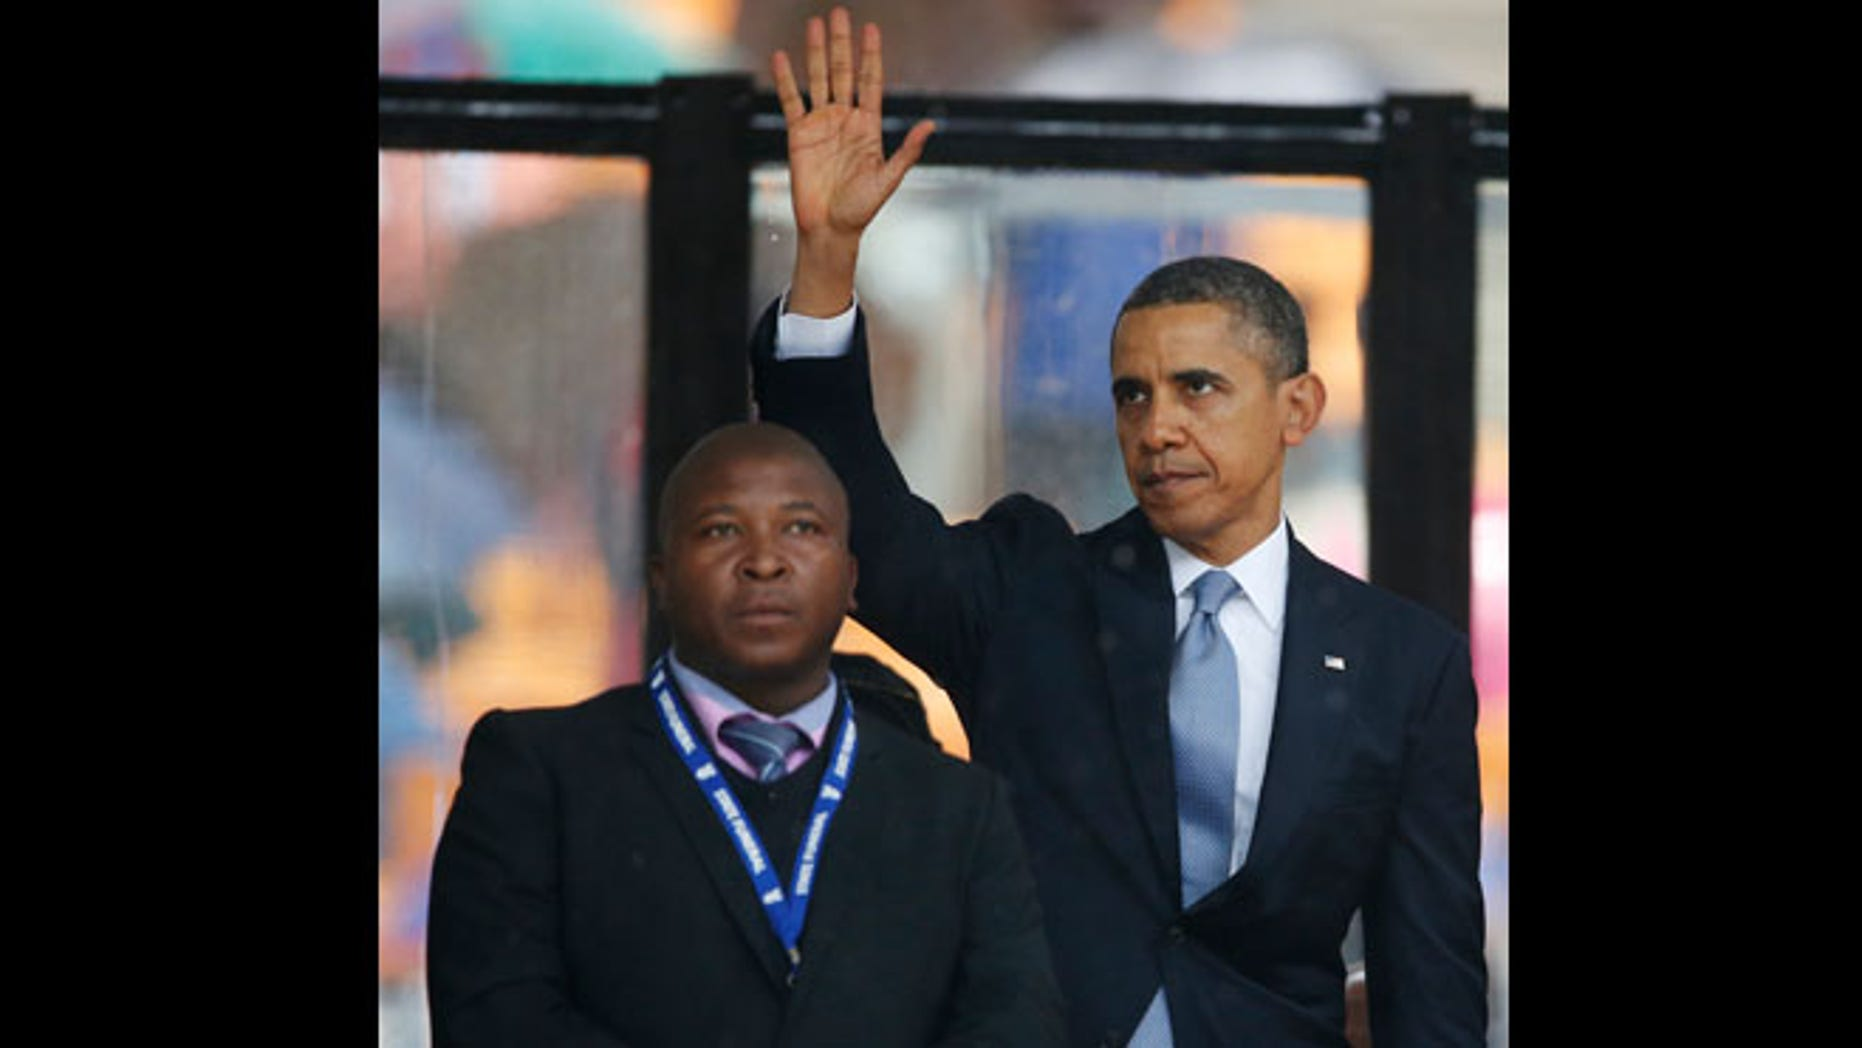 Dec. 10, 2013: President Barack Obama waves standing next to the sign language interpreter after making his speech at the memorial service for former South African president Nelson Mandela at the FNB Stadium in Soweto near Johannesburg. South Africa's deaf federation said on Wednesday that the interpreter on stage for Mandela memorial was a 'fake.'